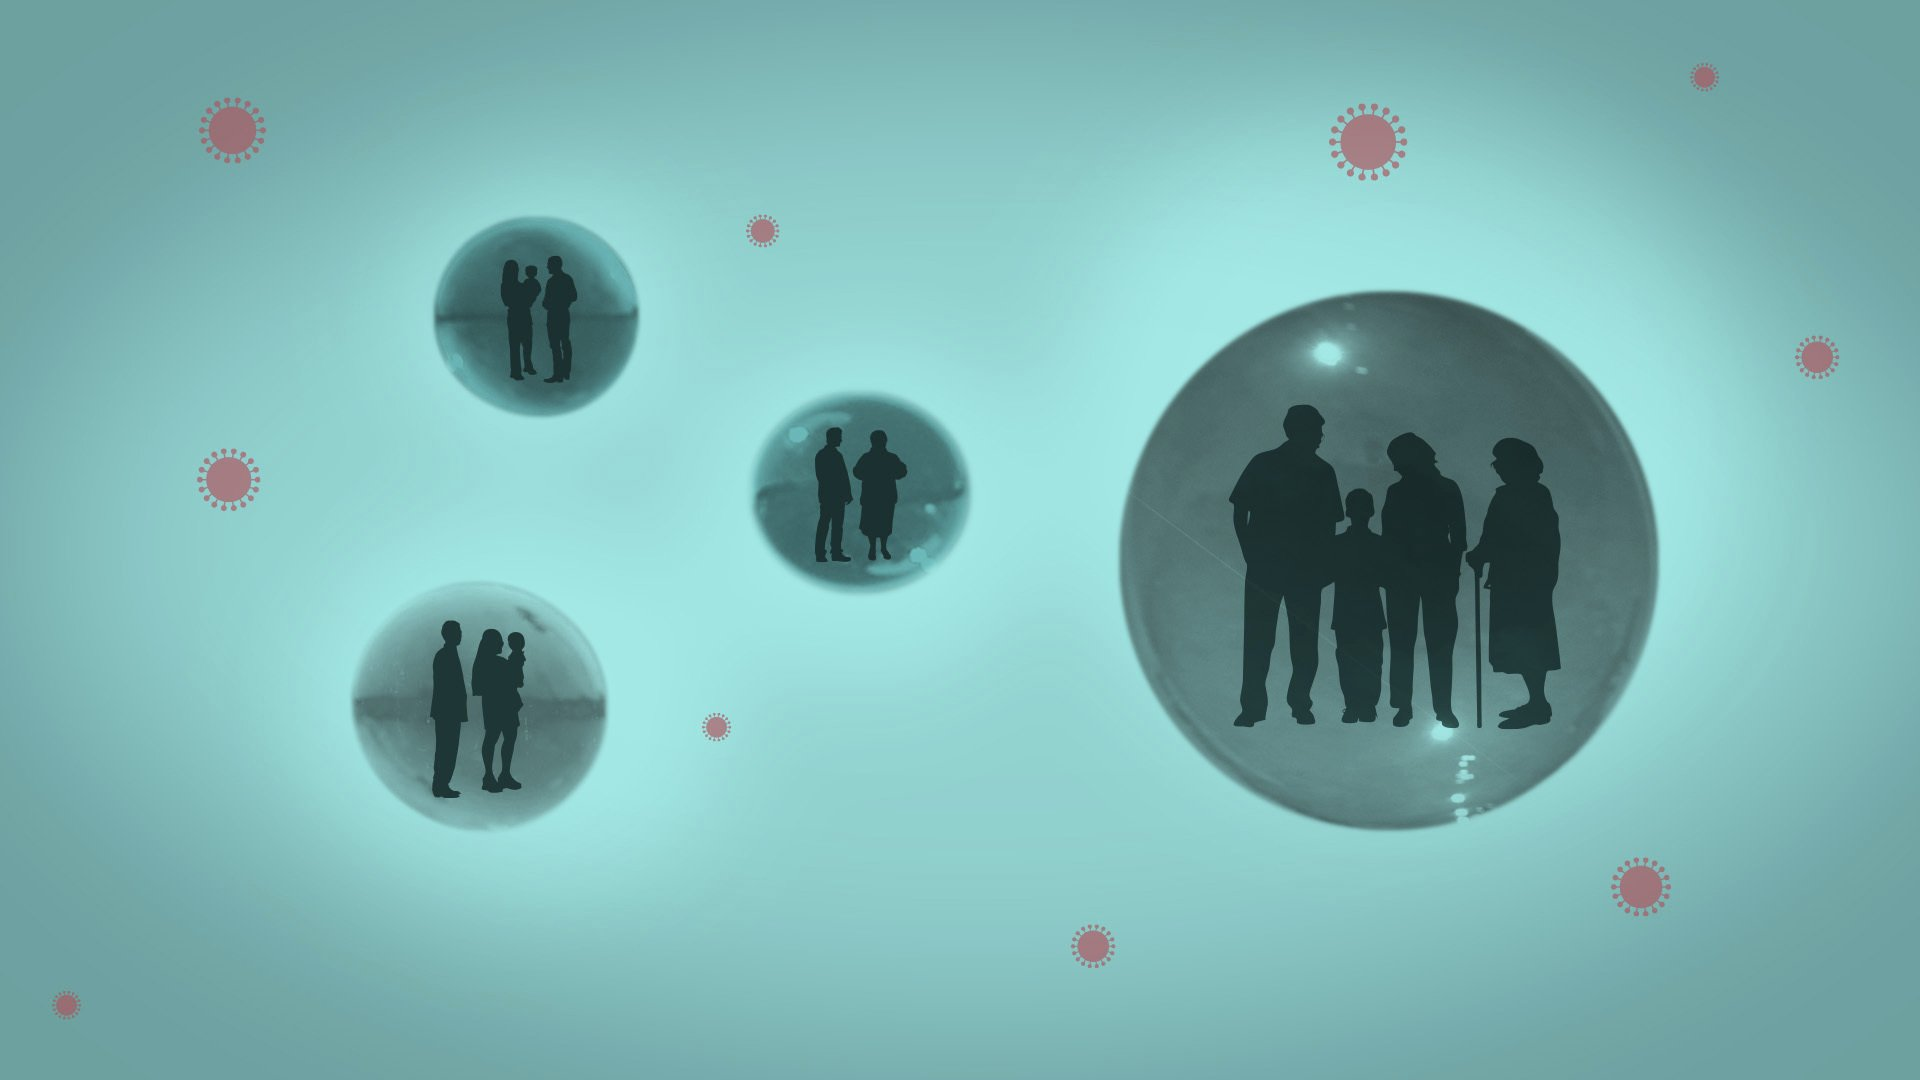 Is it safe to form a COVID-19 'support bubble' with friends? - The Associated Press thumbnail